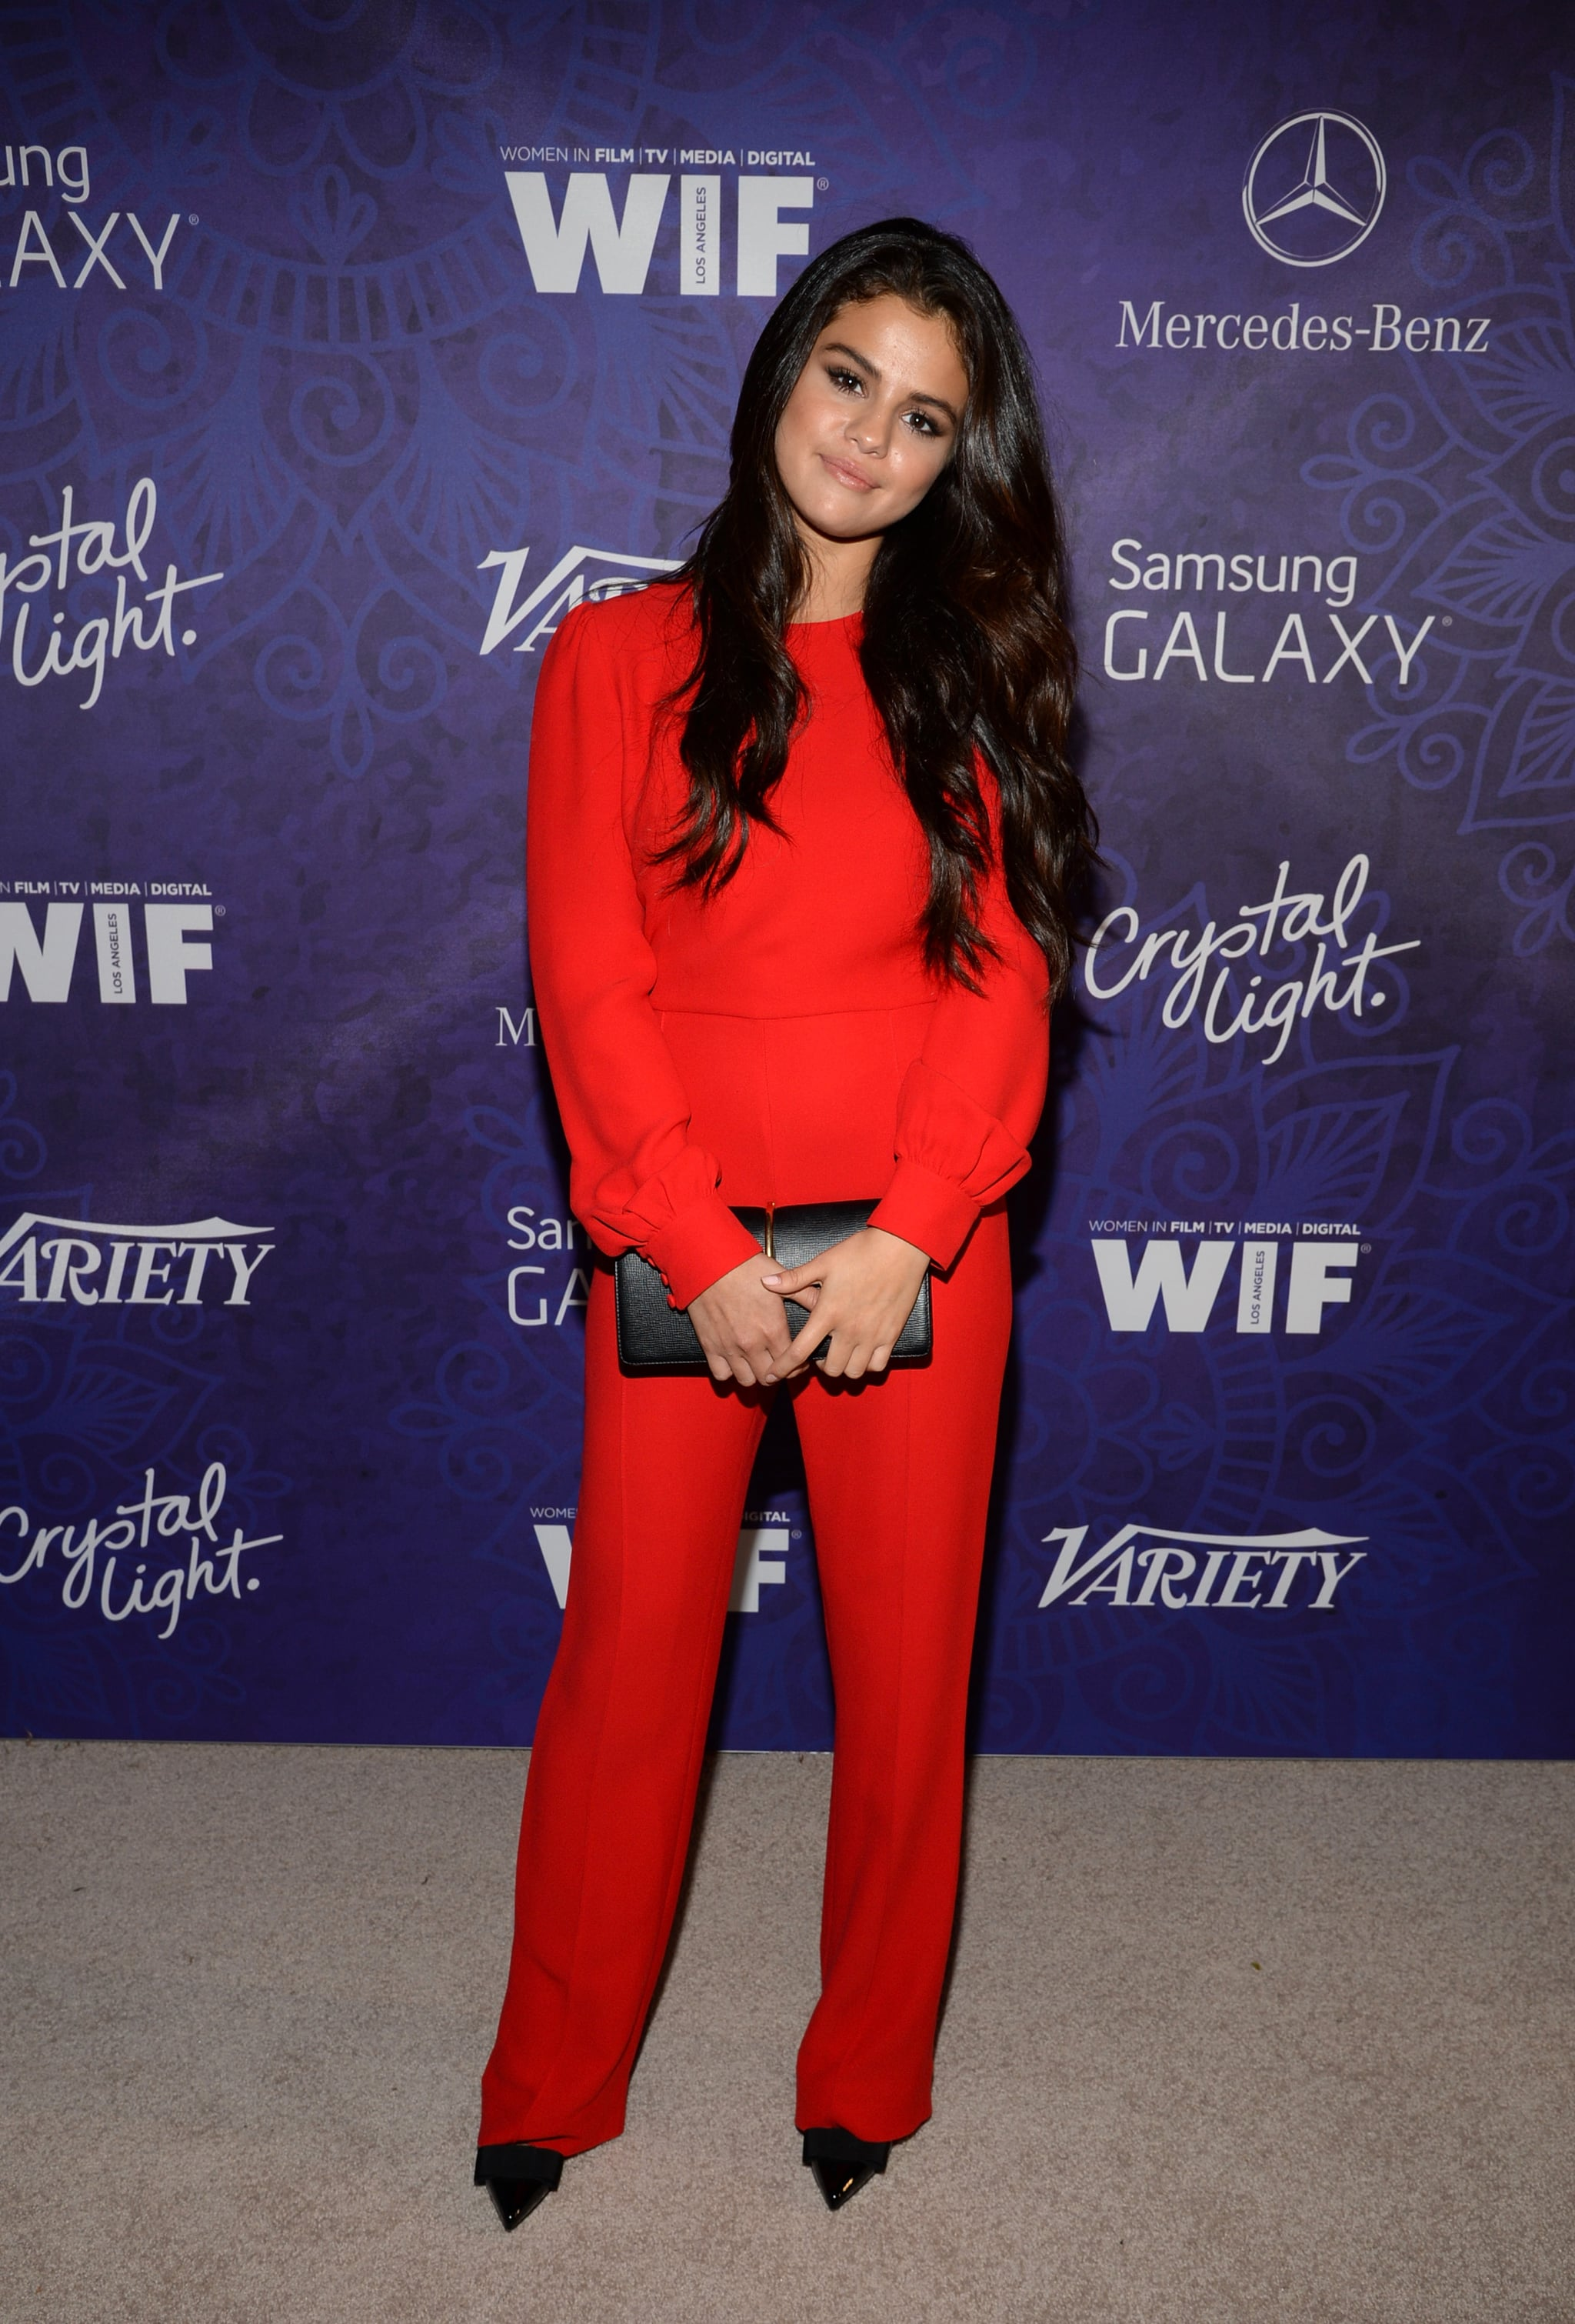 Selena Gomez spent her Saturday night at Variety's fete.